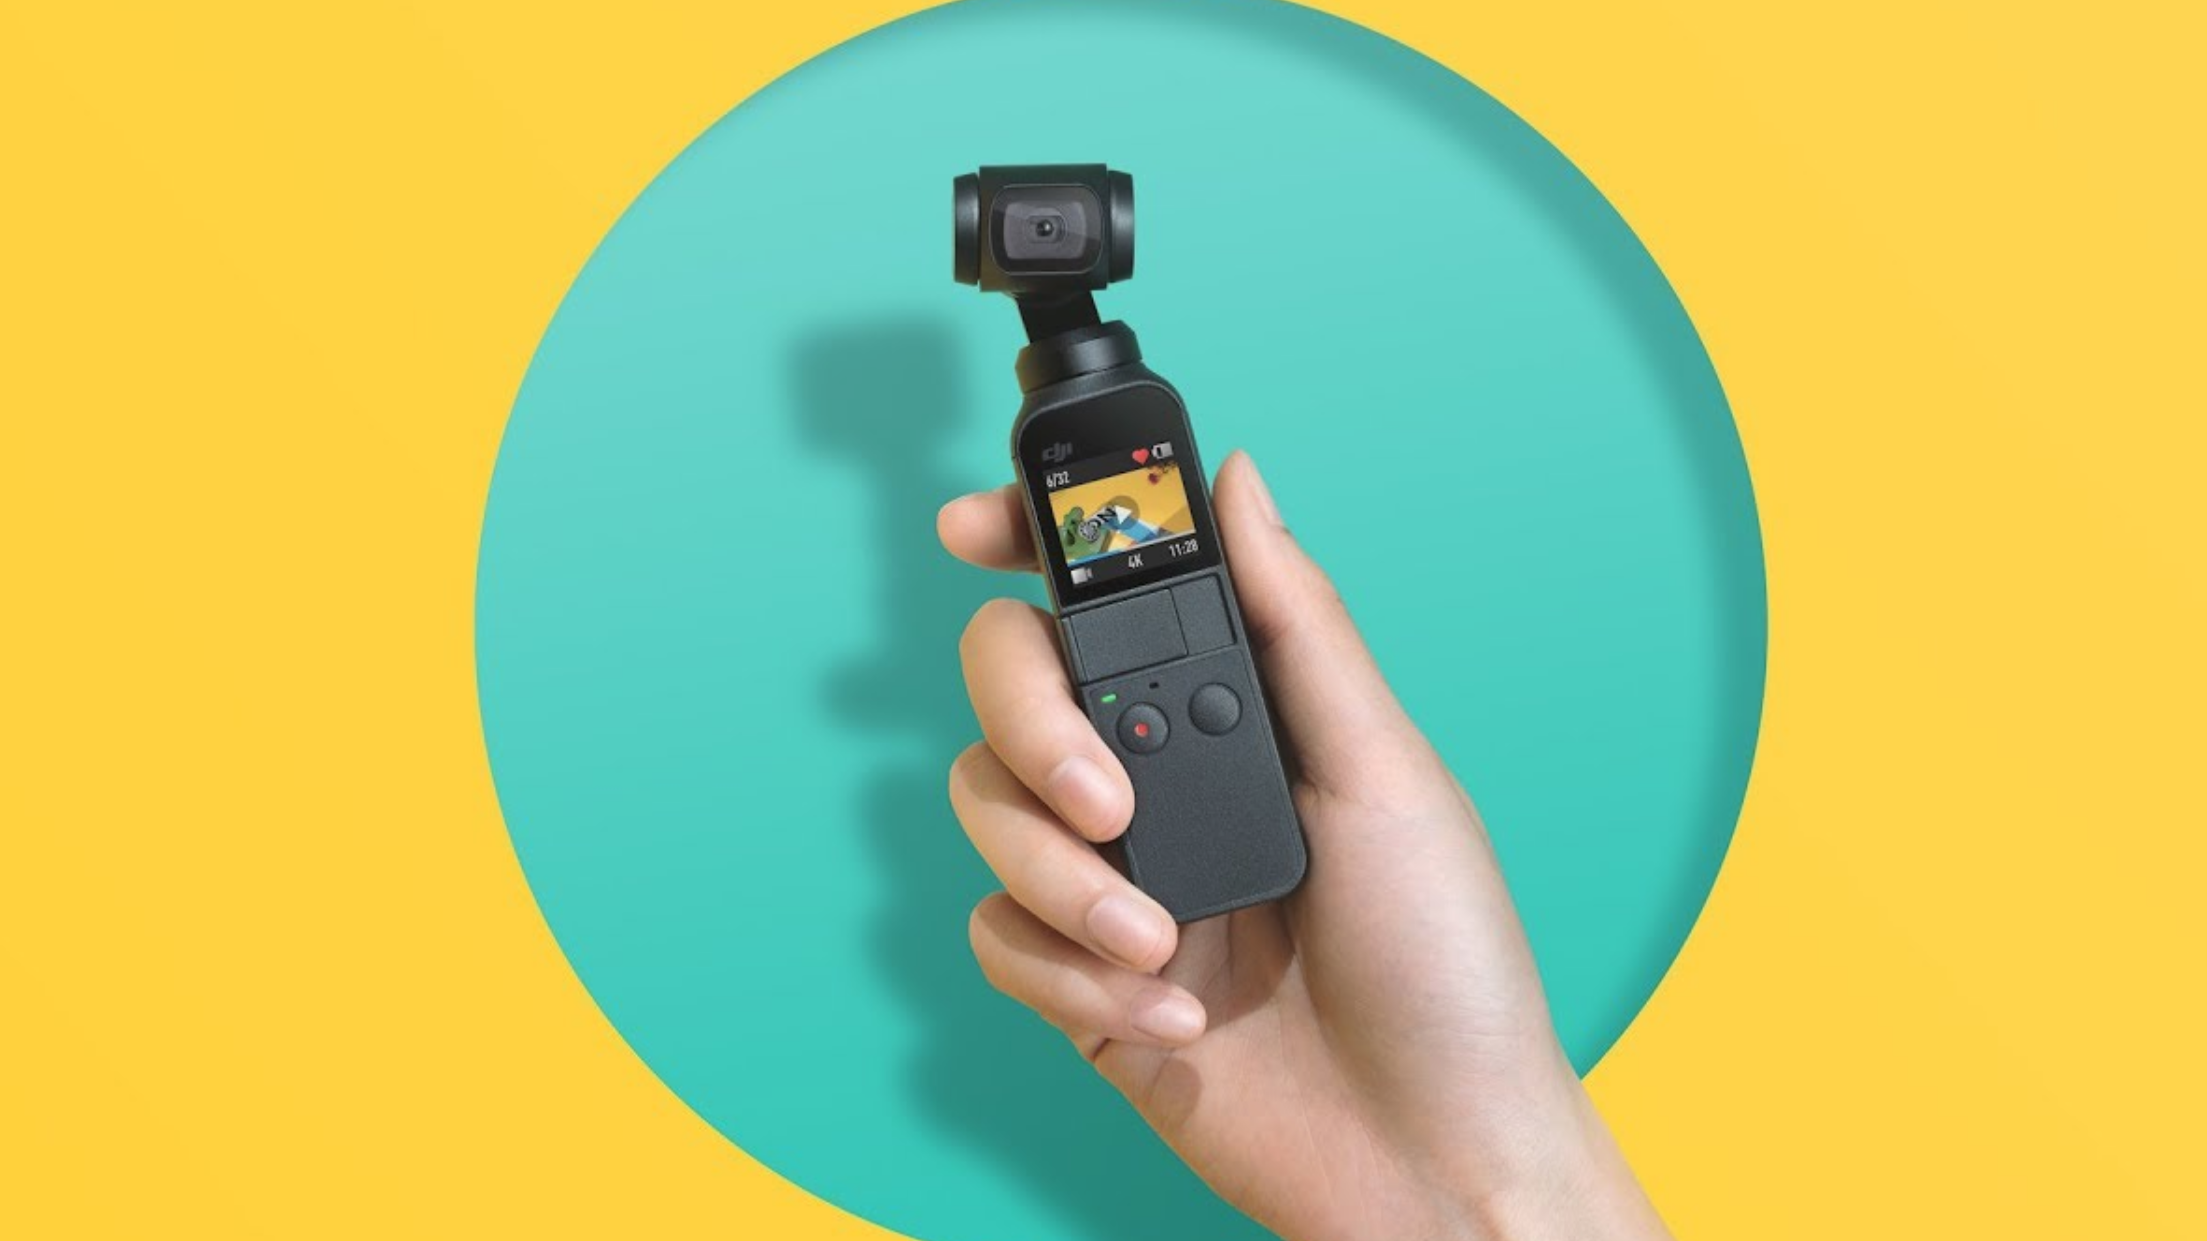 DJI announced world's smallest three-axis stabilized camera, Osmo Pocket for ~RM1463